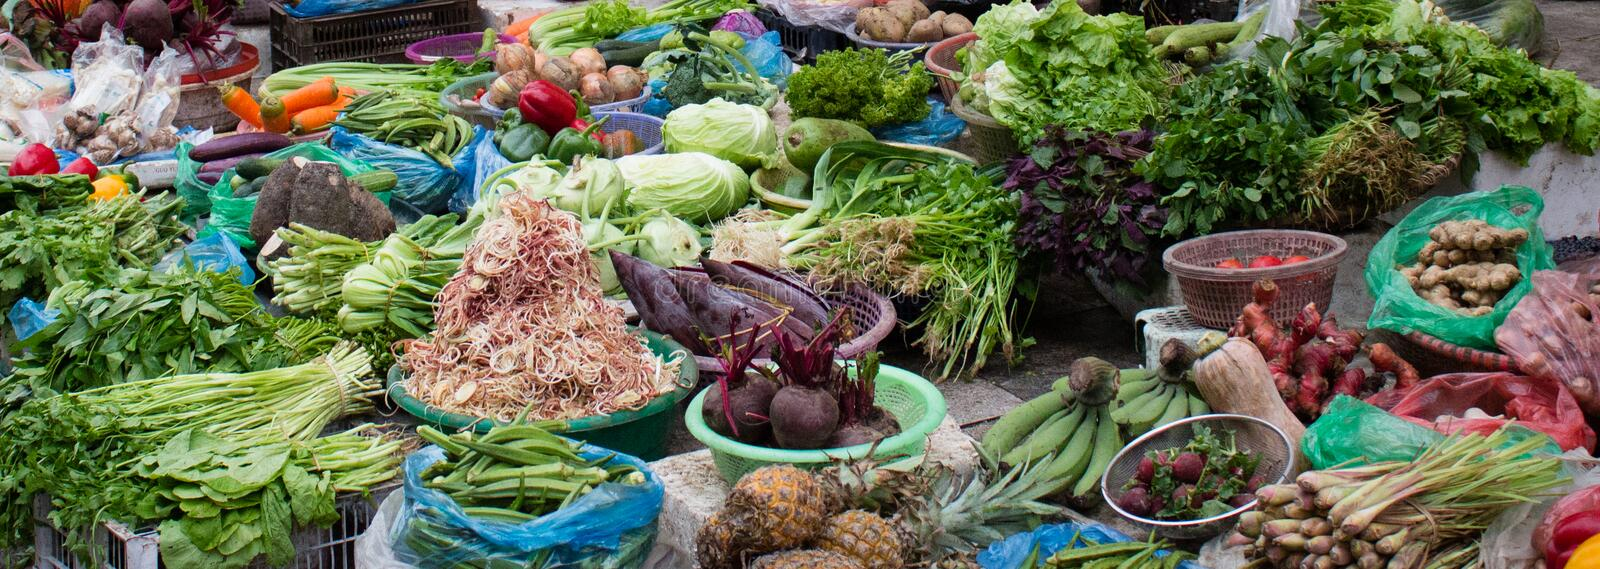 Local vegetable and fruit shop on the ground in local market royalty free stock photo